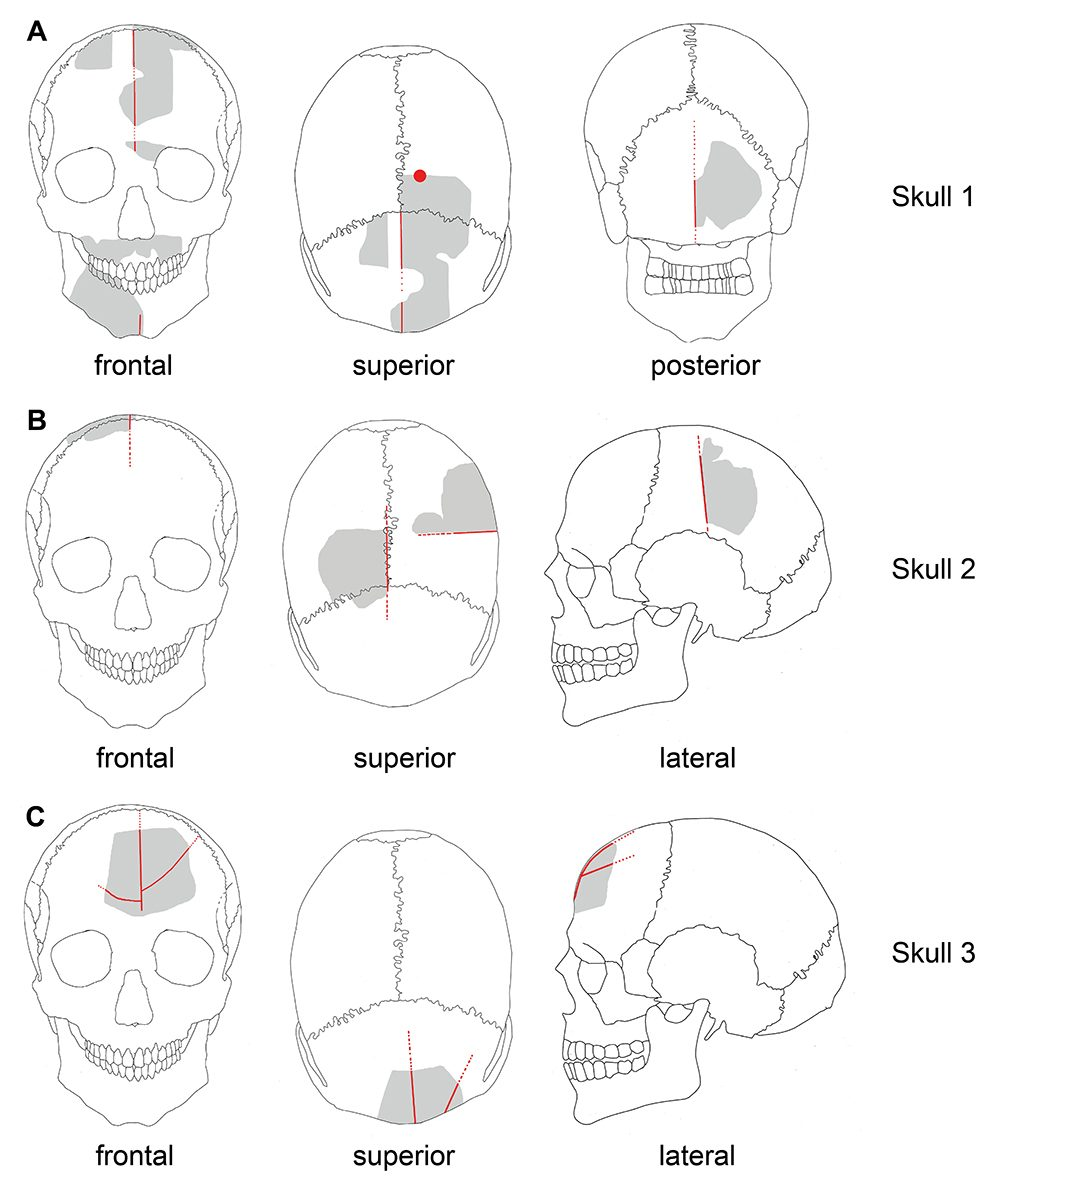 Fig. 4: Schematic drawings of Göbekli Tepe skulls. Gray: preserved elements; red: modifications. (Image: Gresky, Haelm, DAI)